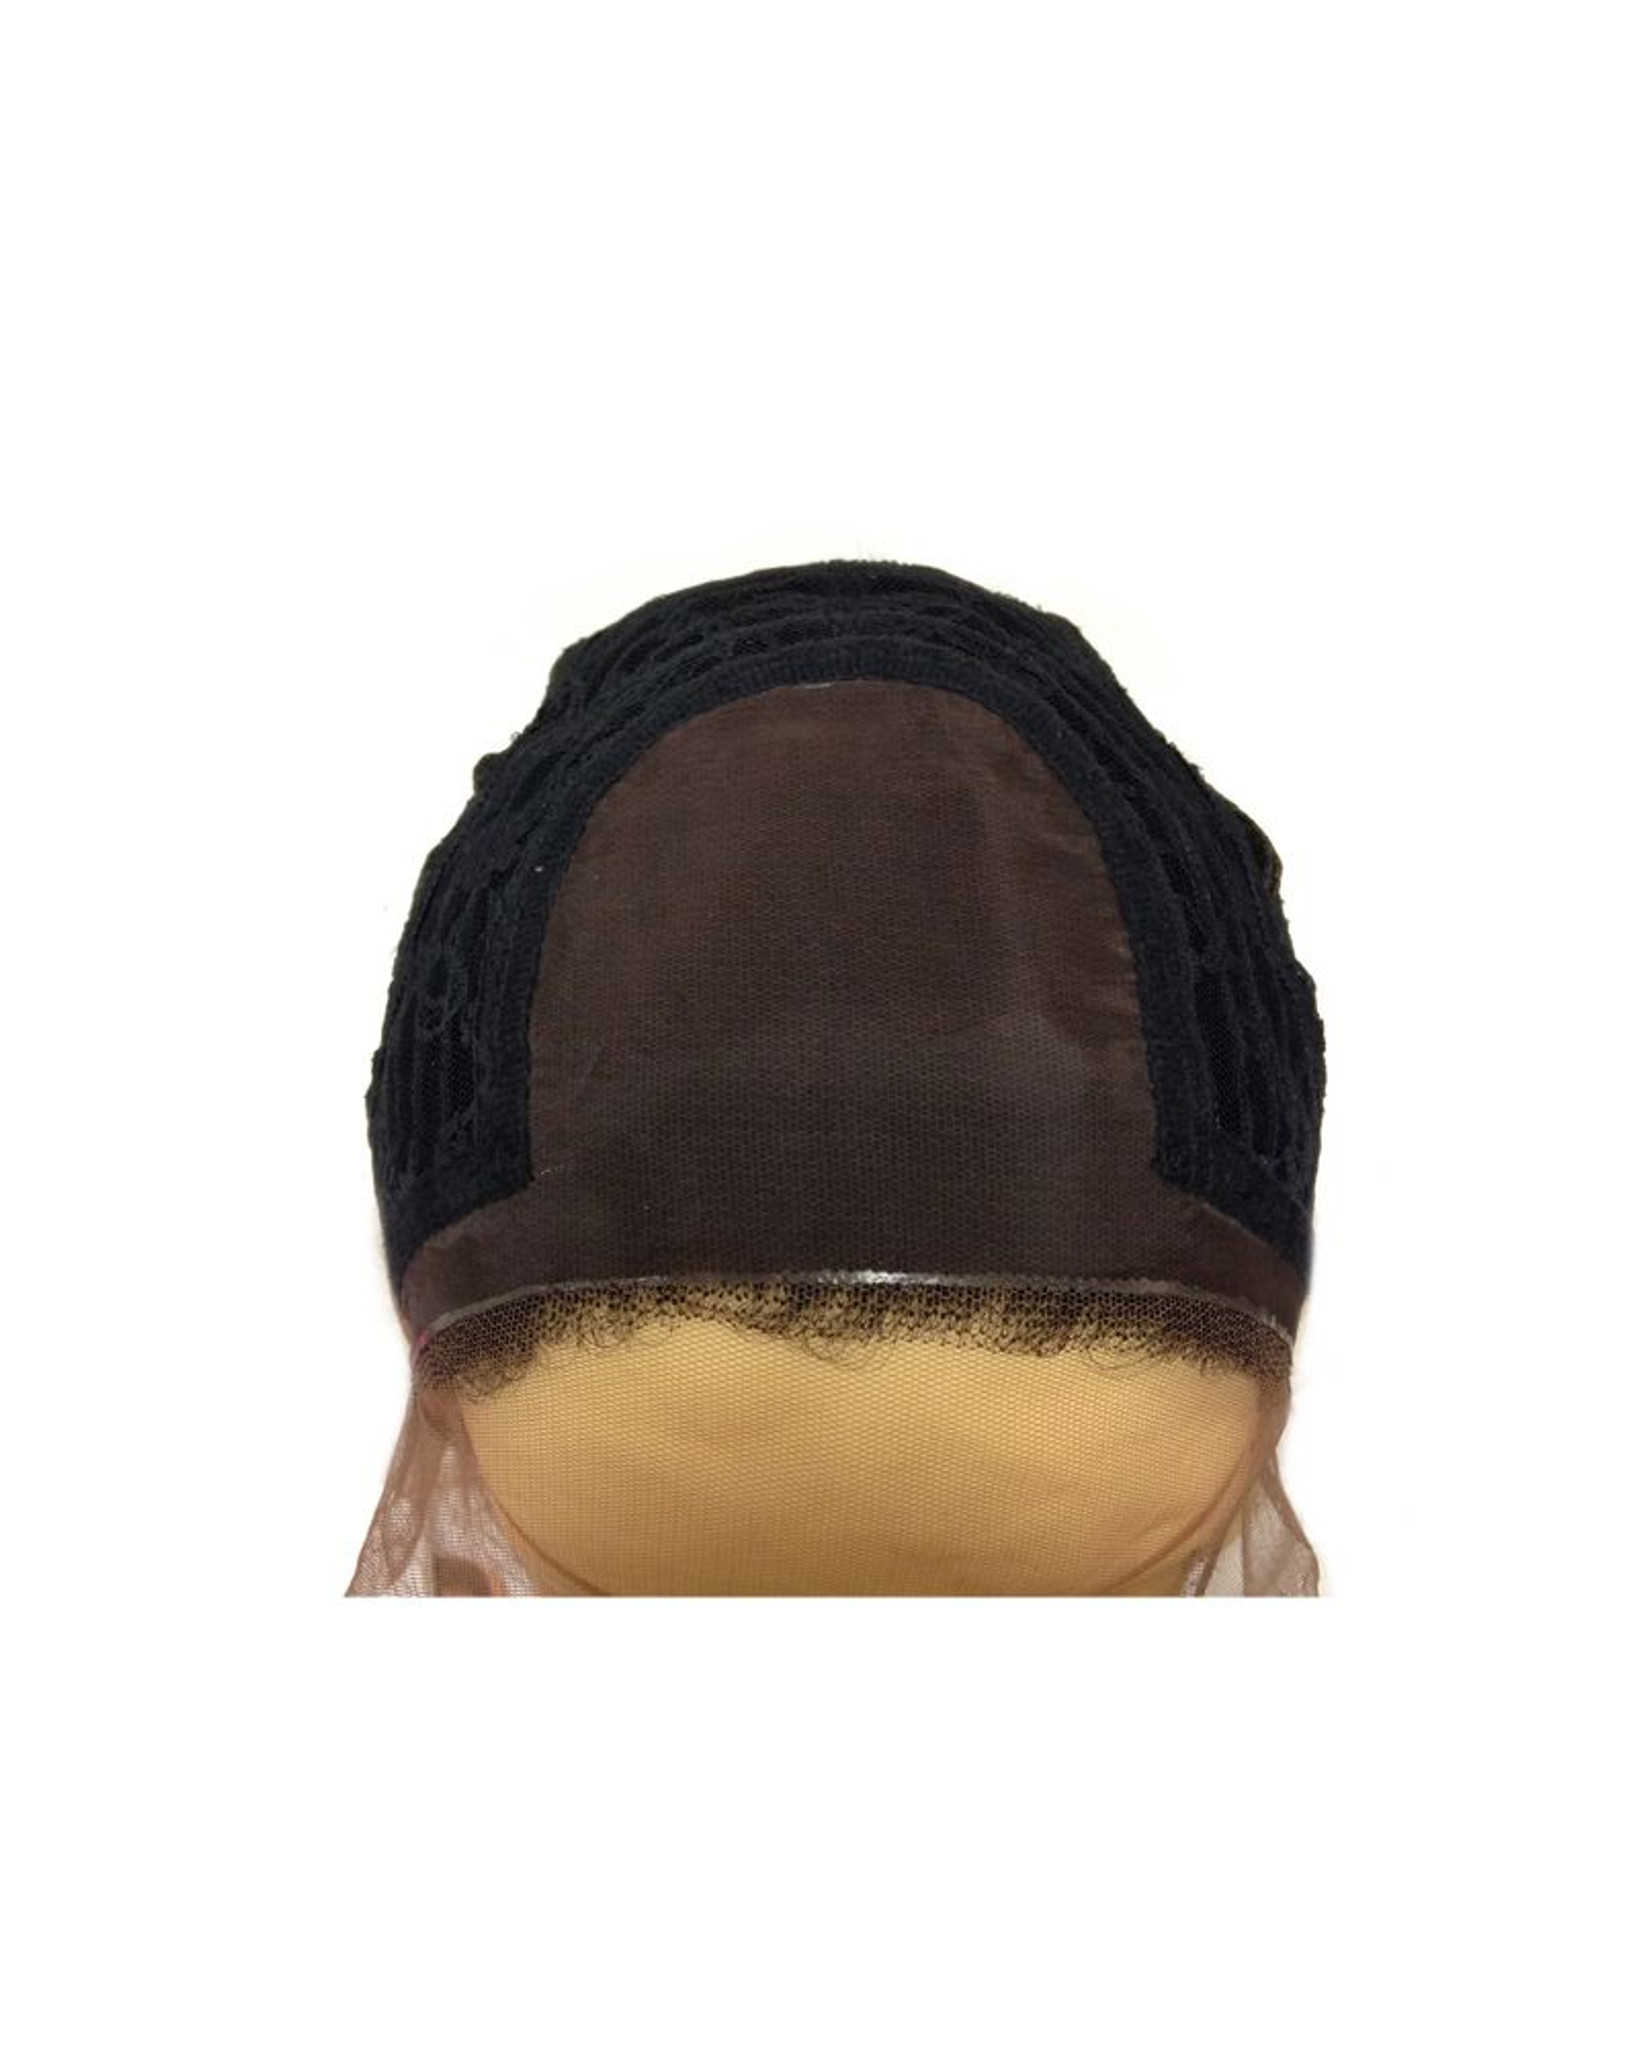 Evelyn | Sepia | Lace Front  | cap view